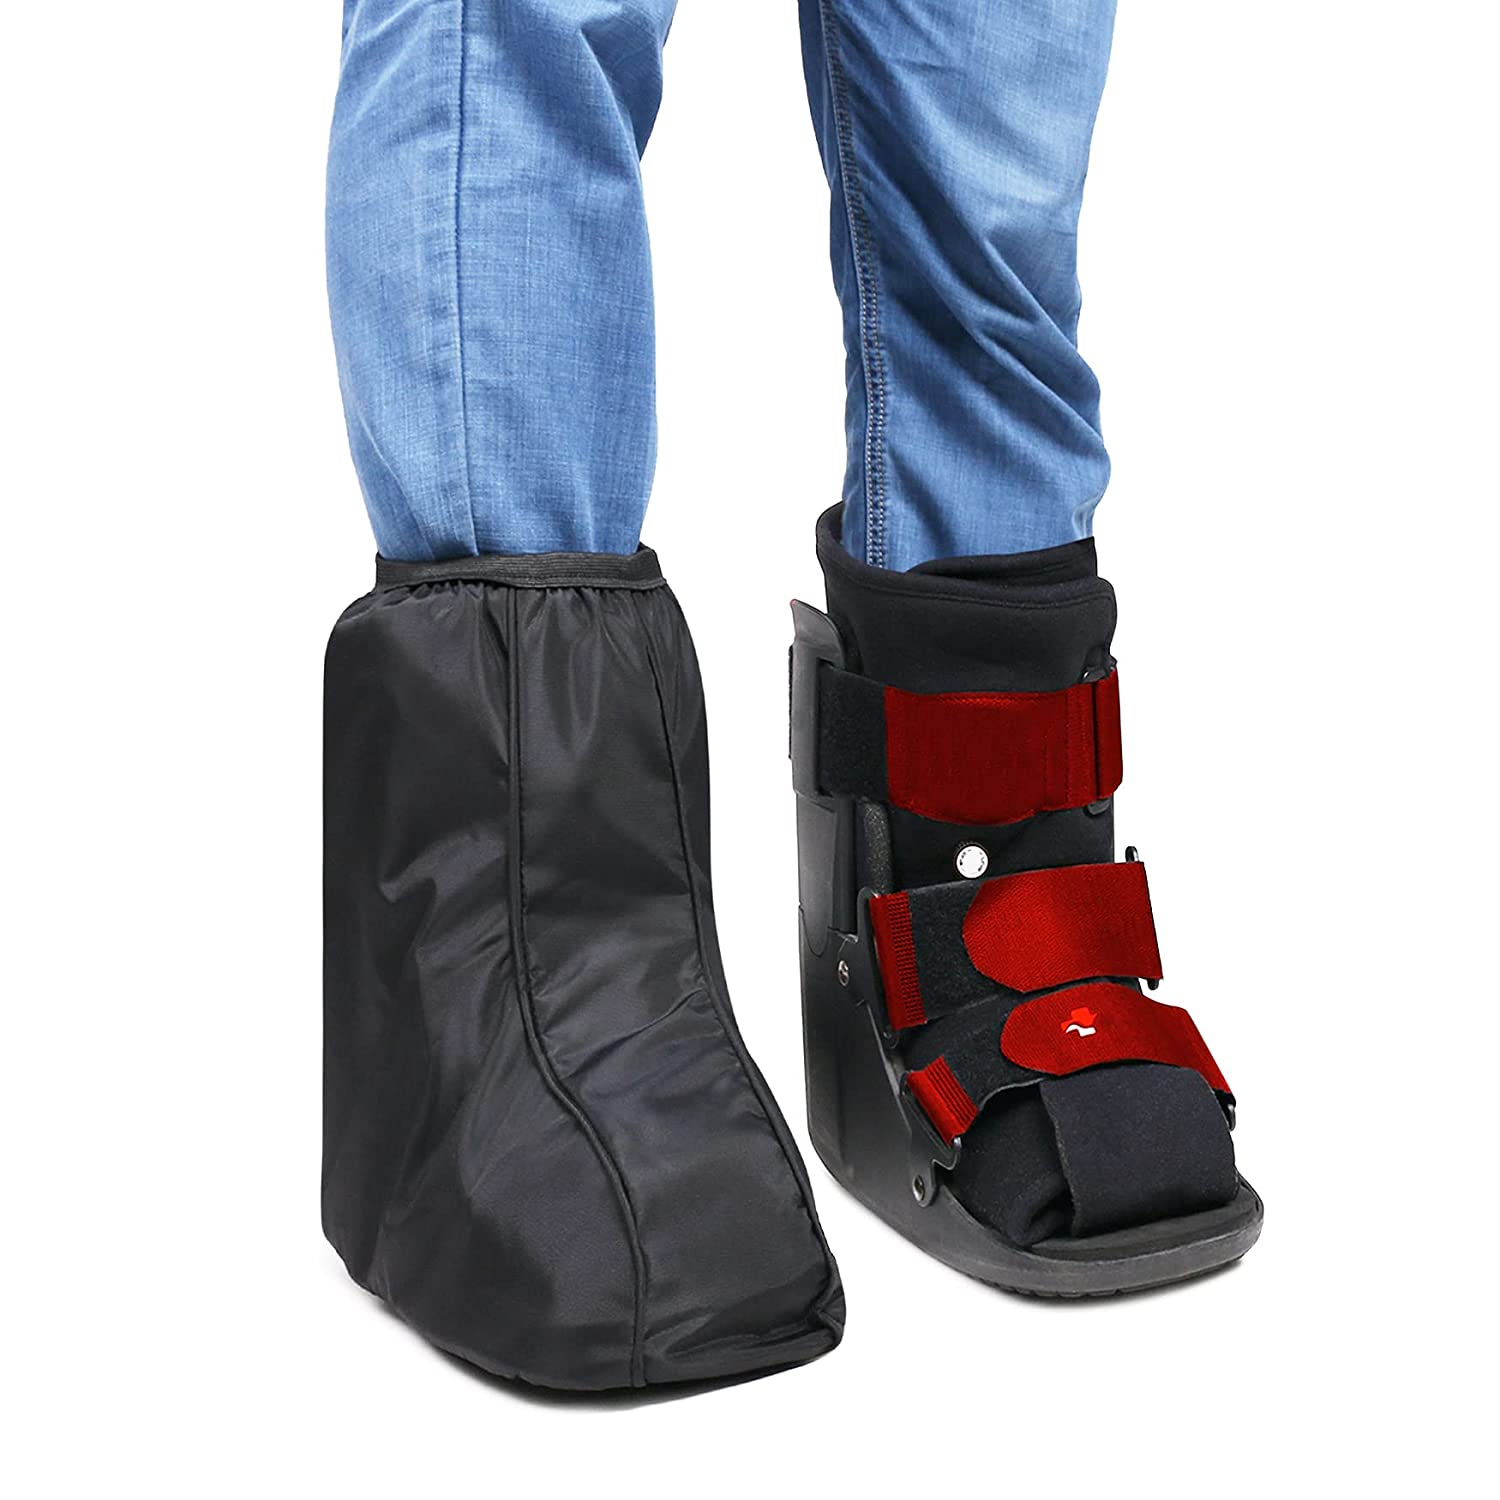 Gifts ARUNNERS Walking Boot Cover for Brace Orthopedic Boston Mall and Fra Medical